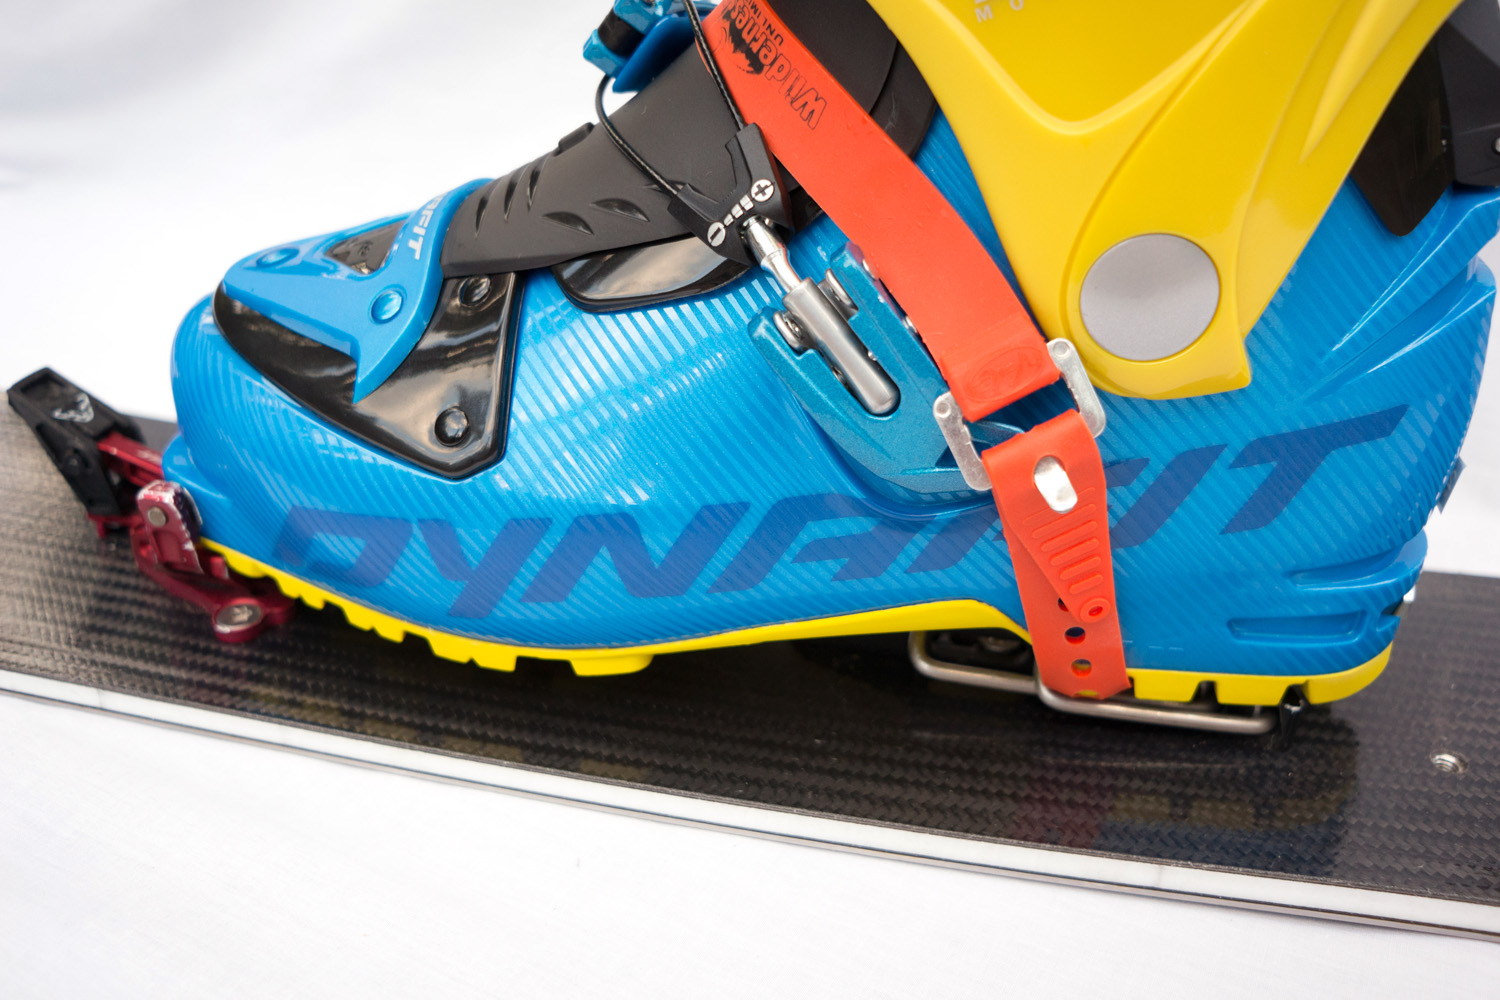 rr strap hold down over boot(2)1500px.jpg